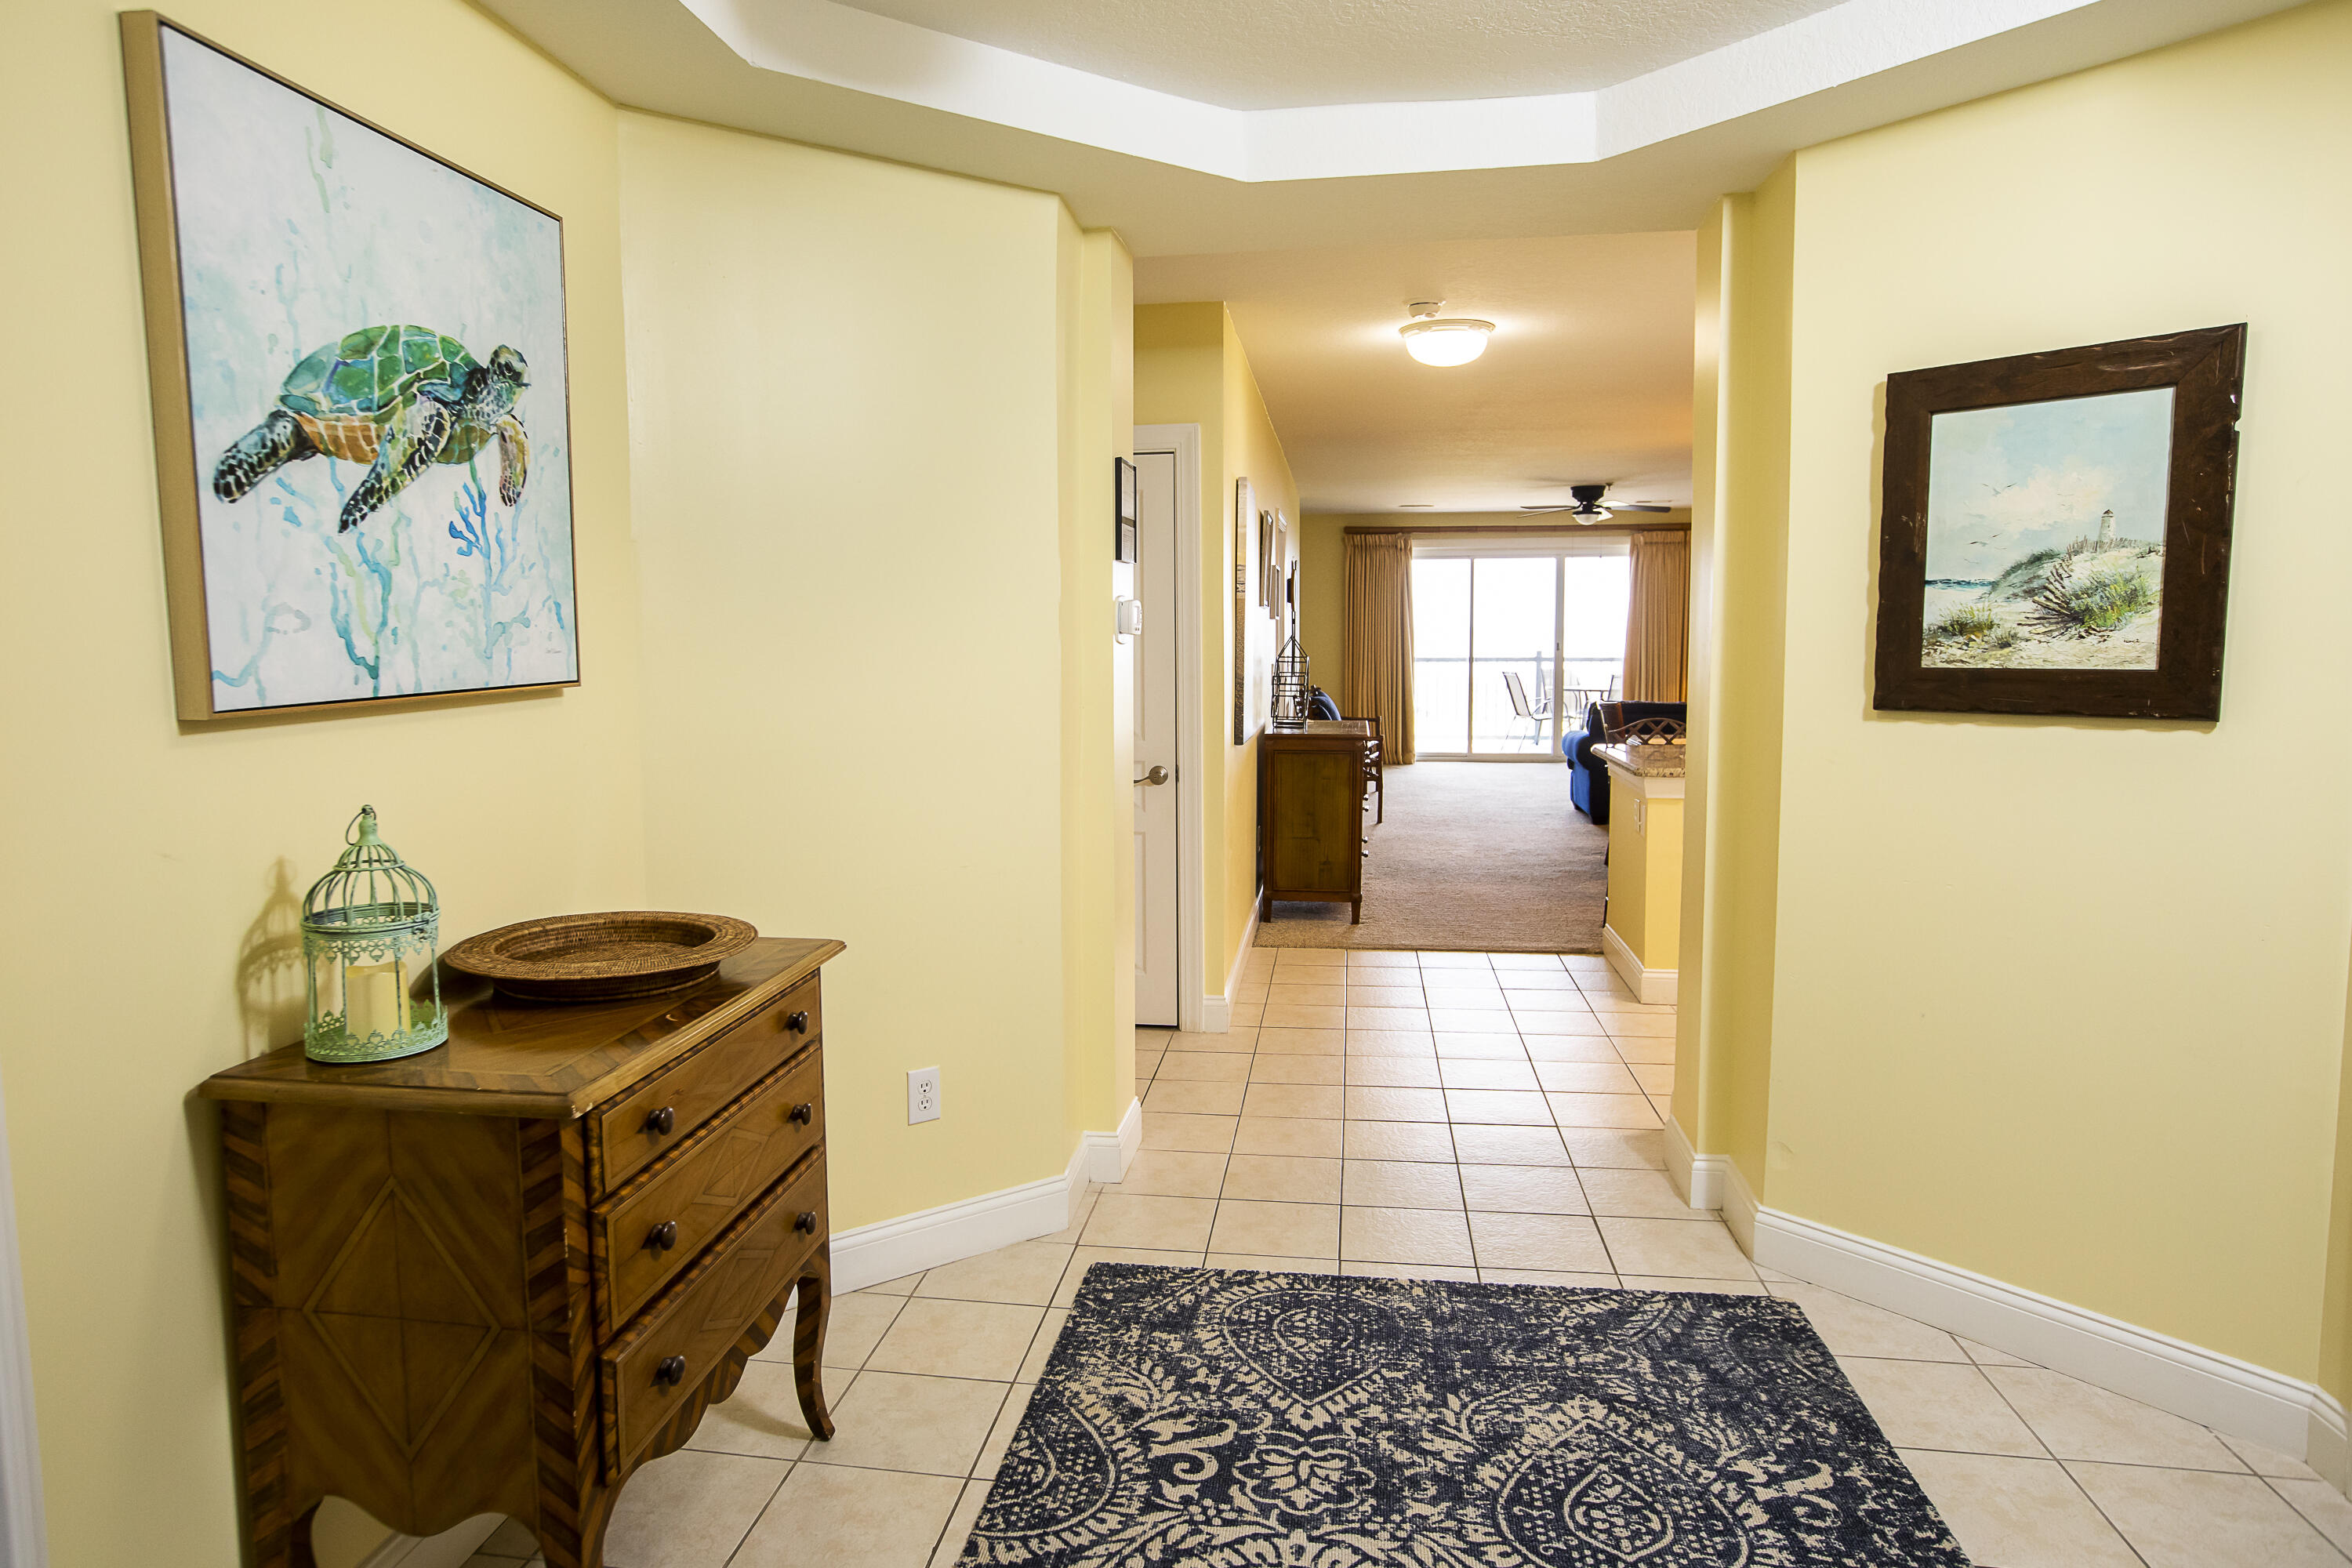 Isle of Palms Homes For Sale - 1140 Ocean, Isle of Palms, SC - 21